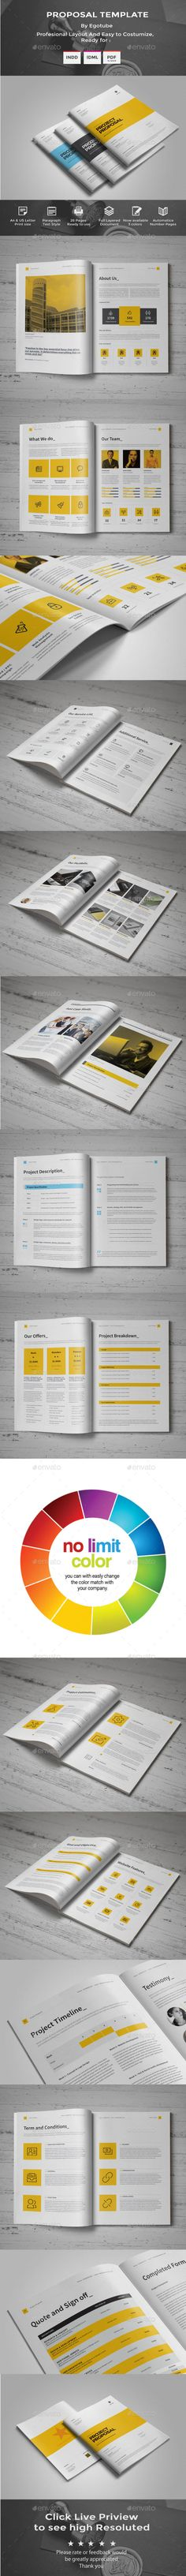 Cloud Sever Proposal Template Template, Proposals and Customize - it services proposal template